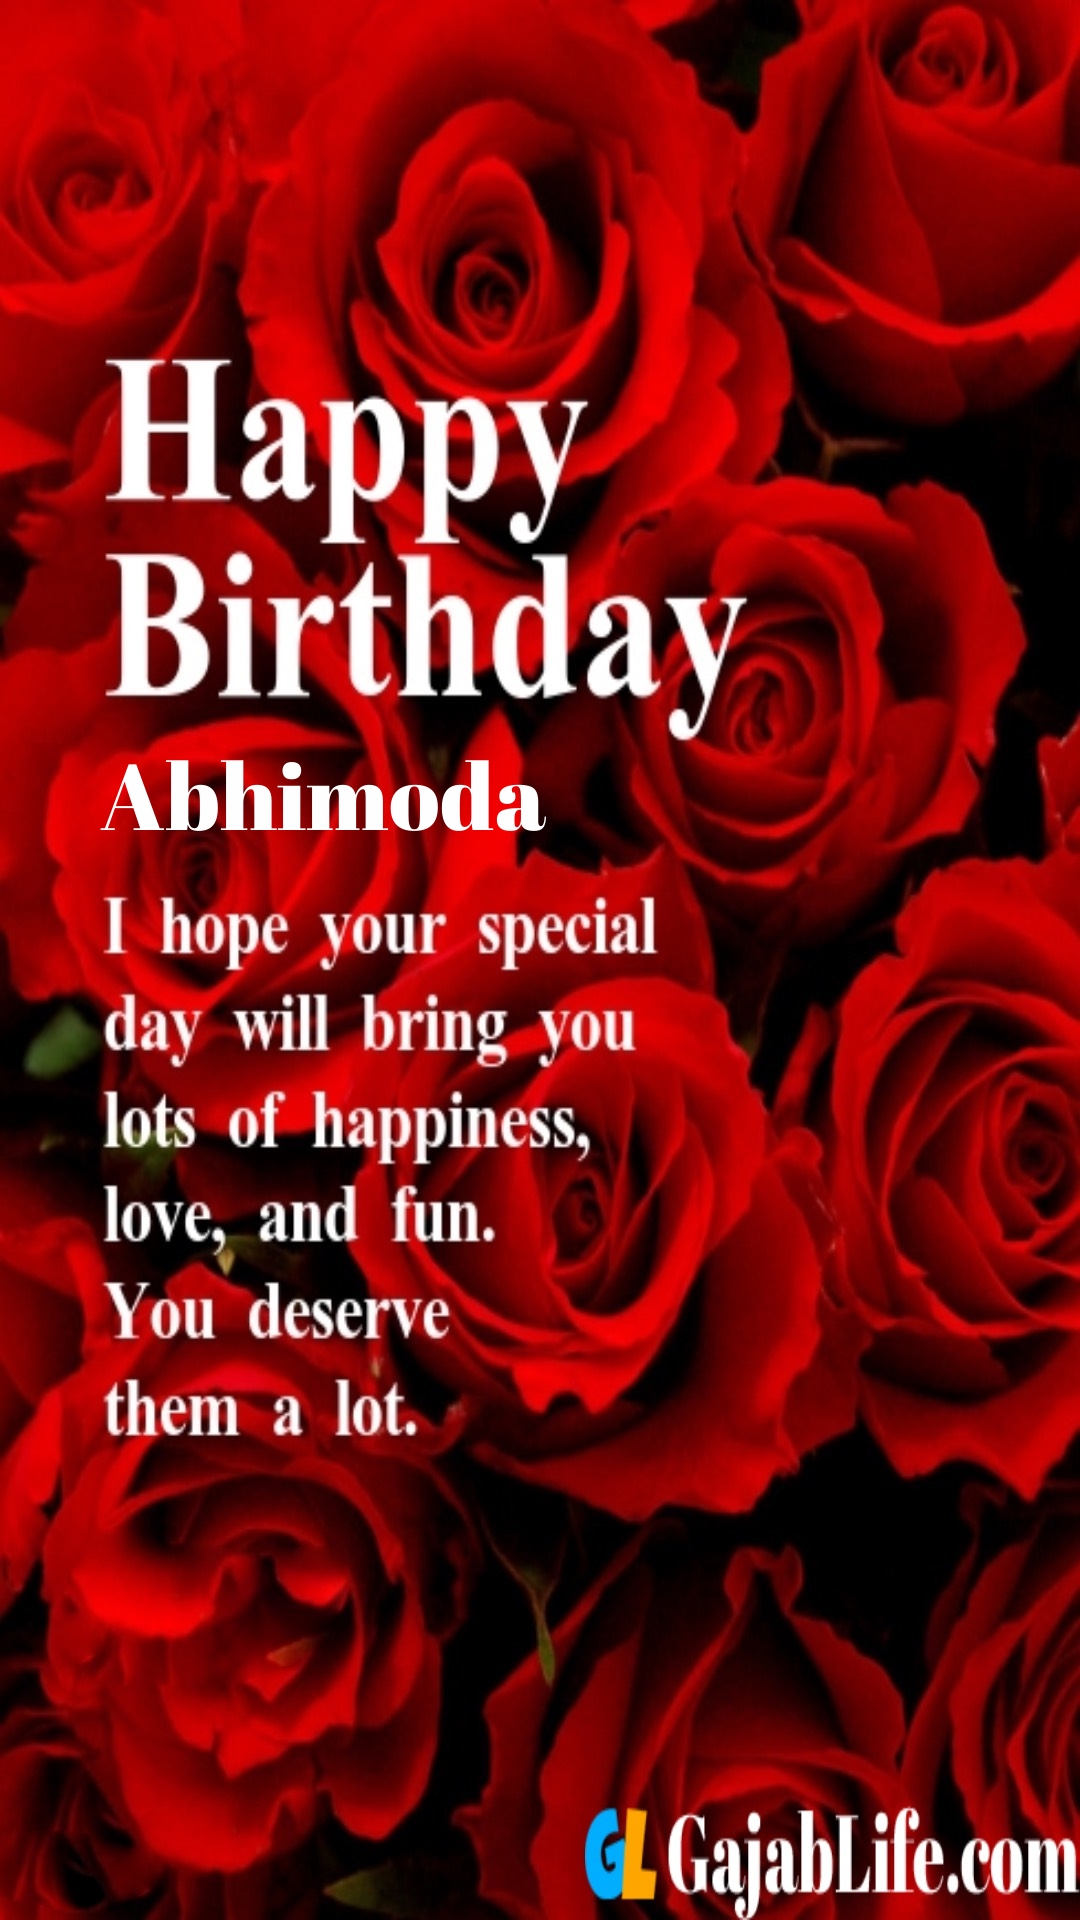 Abhimoda birthday greeting card with rose & love